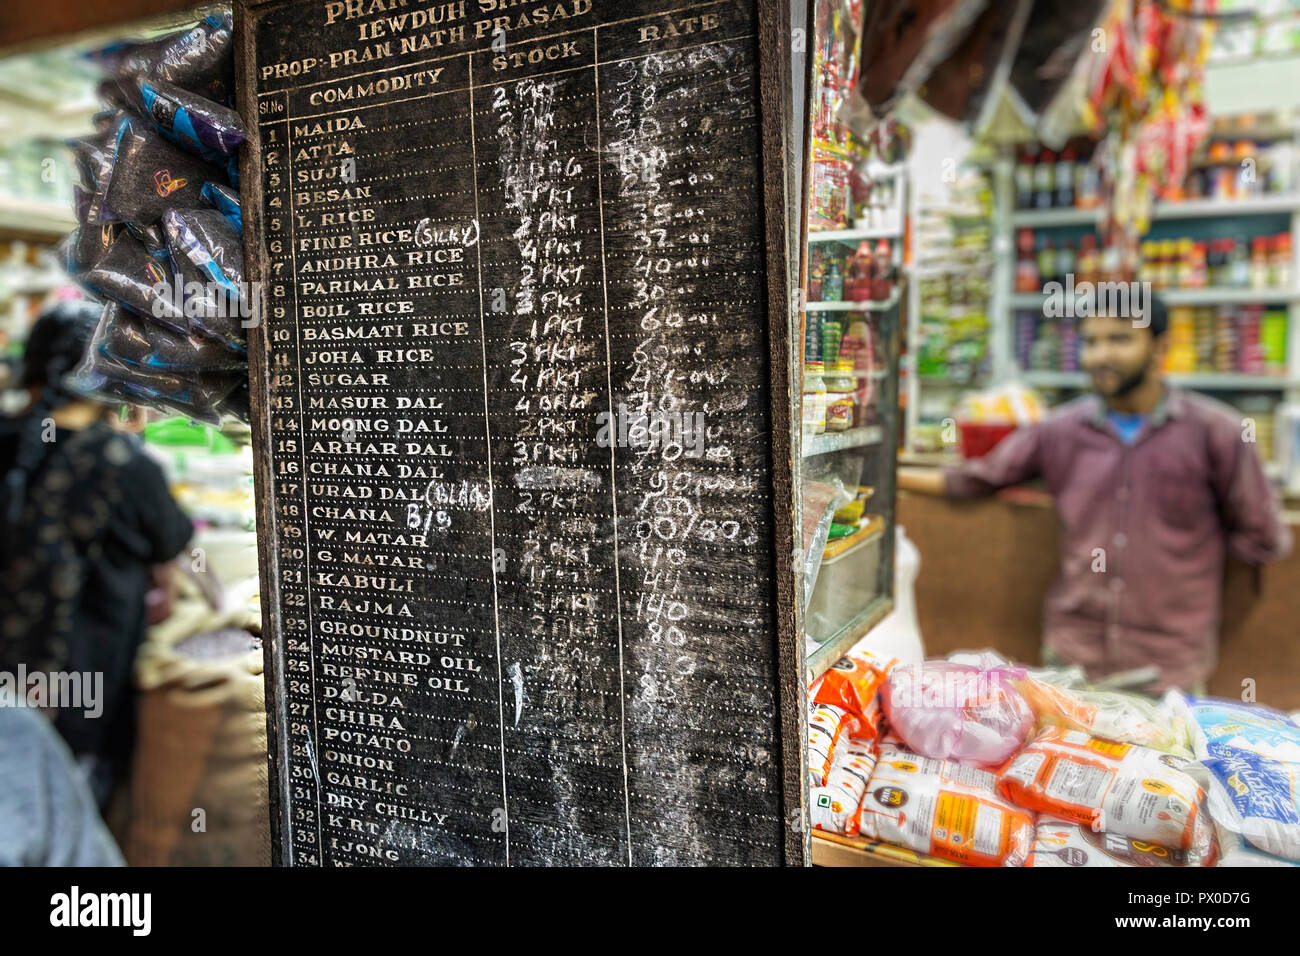 Prices of rice and food in shop in market, Shillong, Meghalaya, India - Stock Image